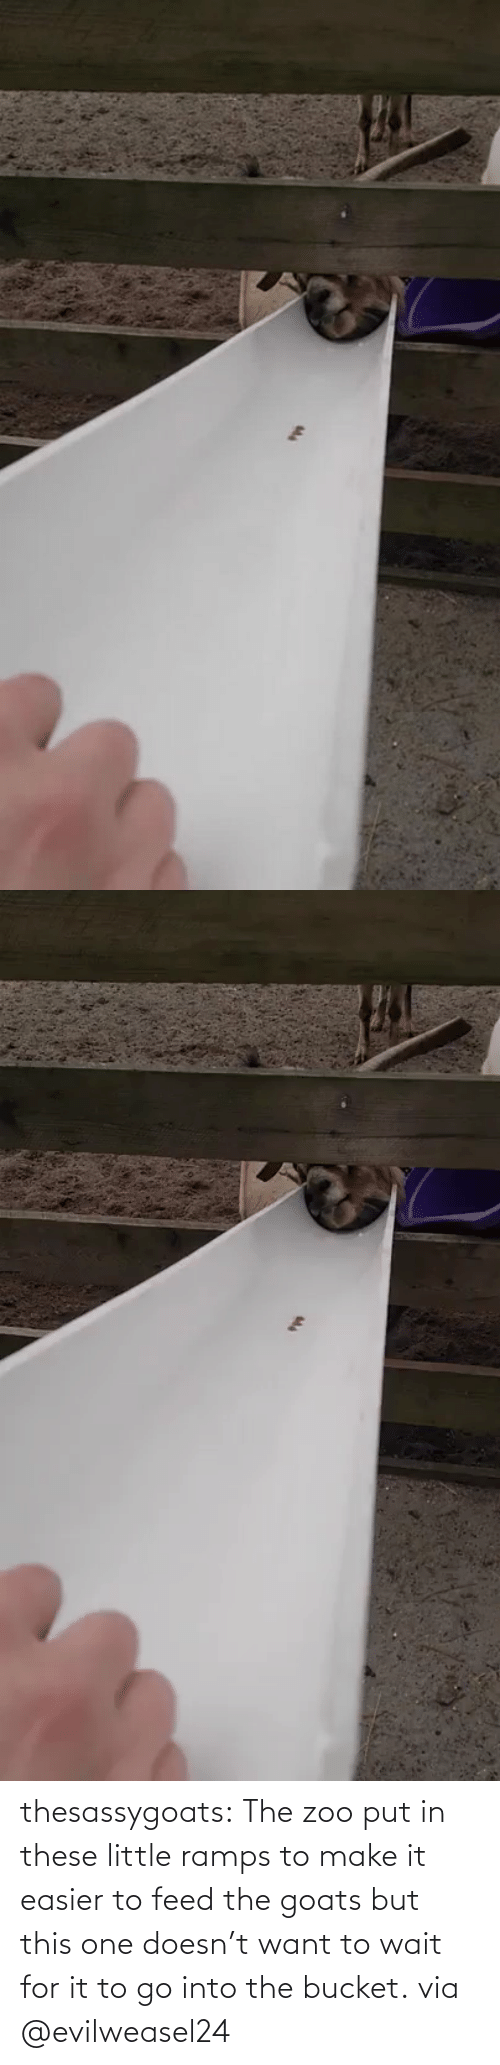 zoo: thesassygoats: The zoo put in these little ramps to make it easier to feed the goats but this one doesn't want to wait for it to go into the bucket. via @evilweasel24